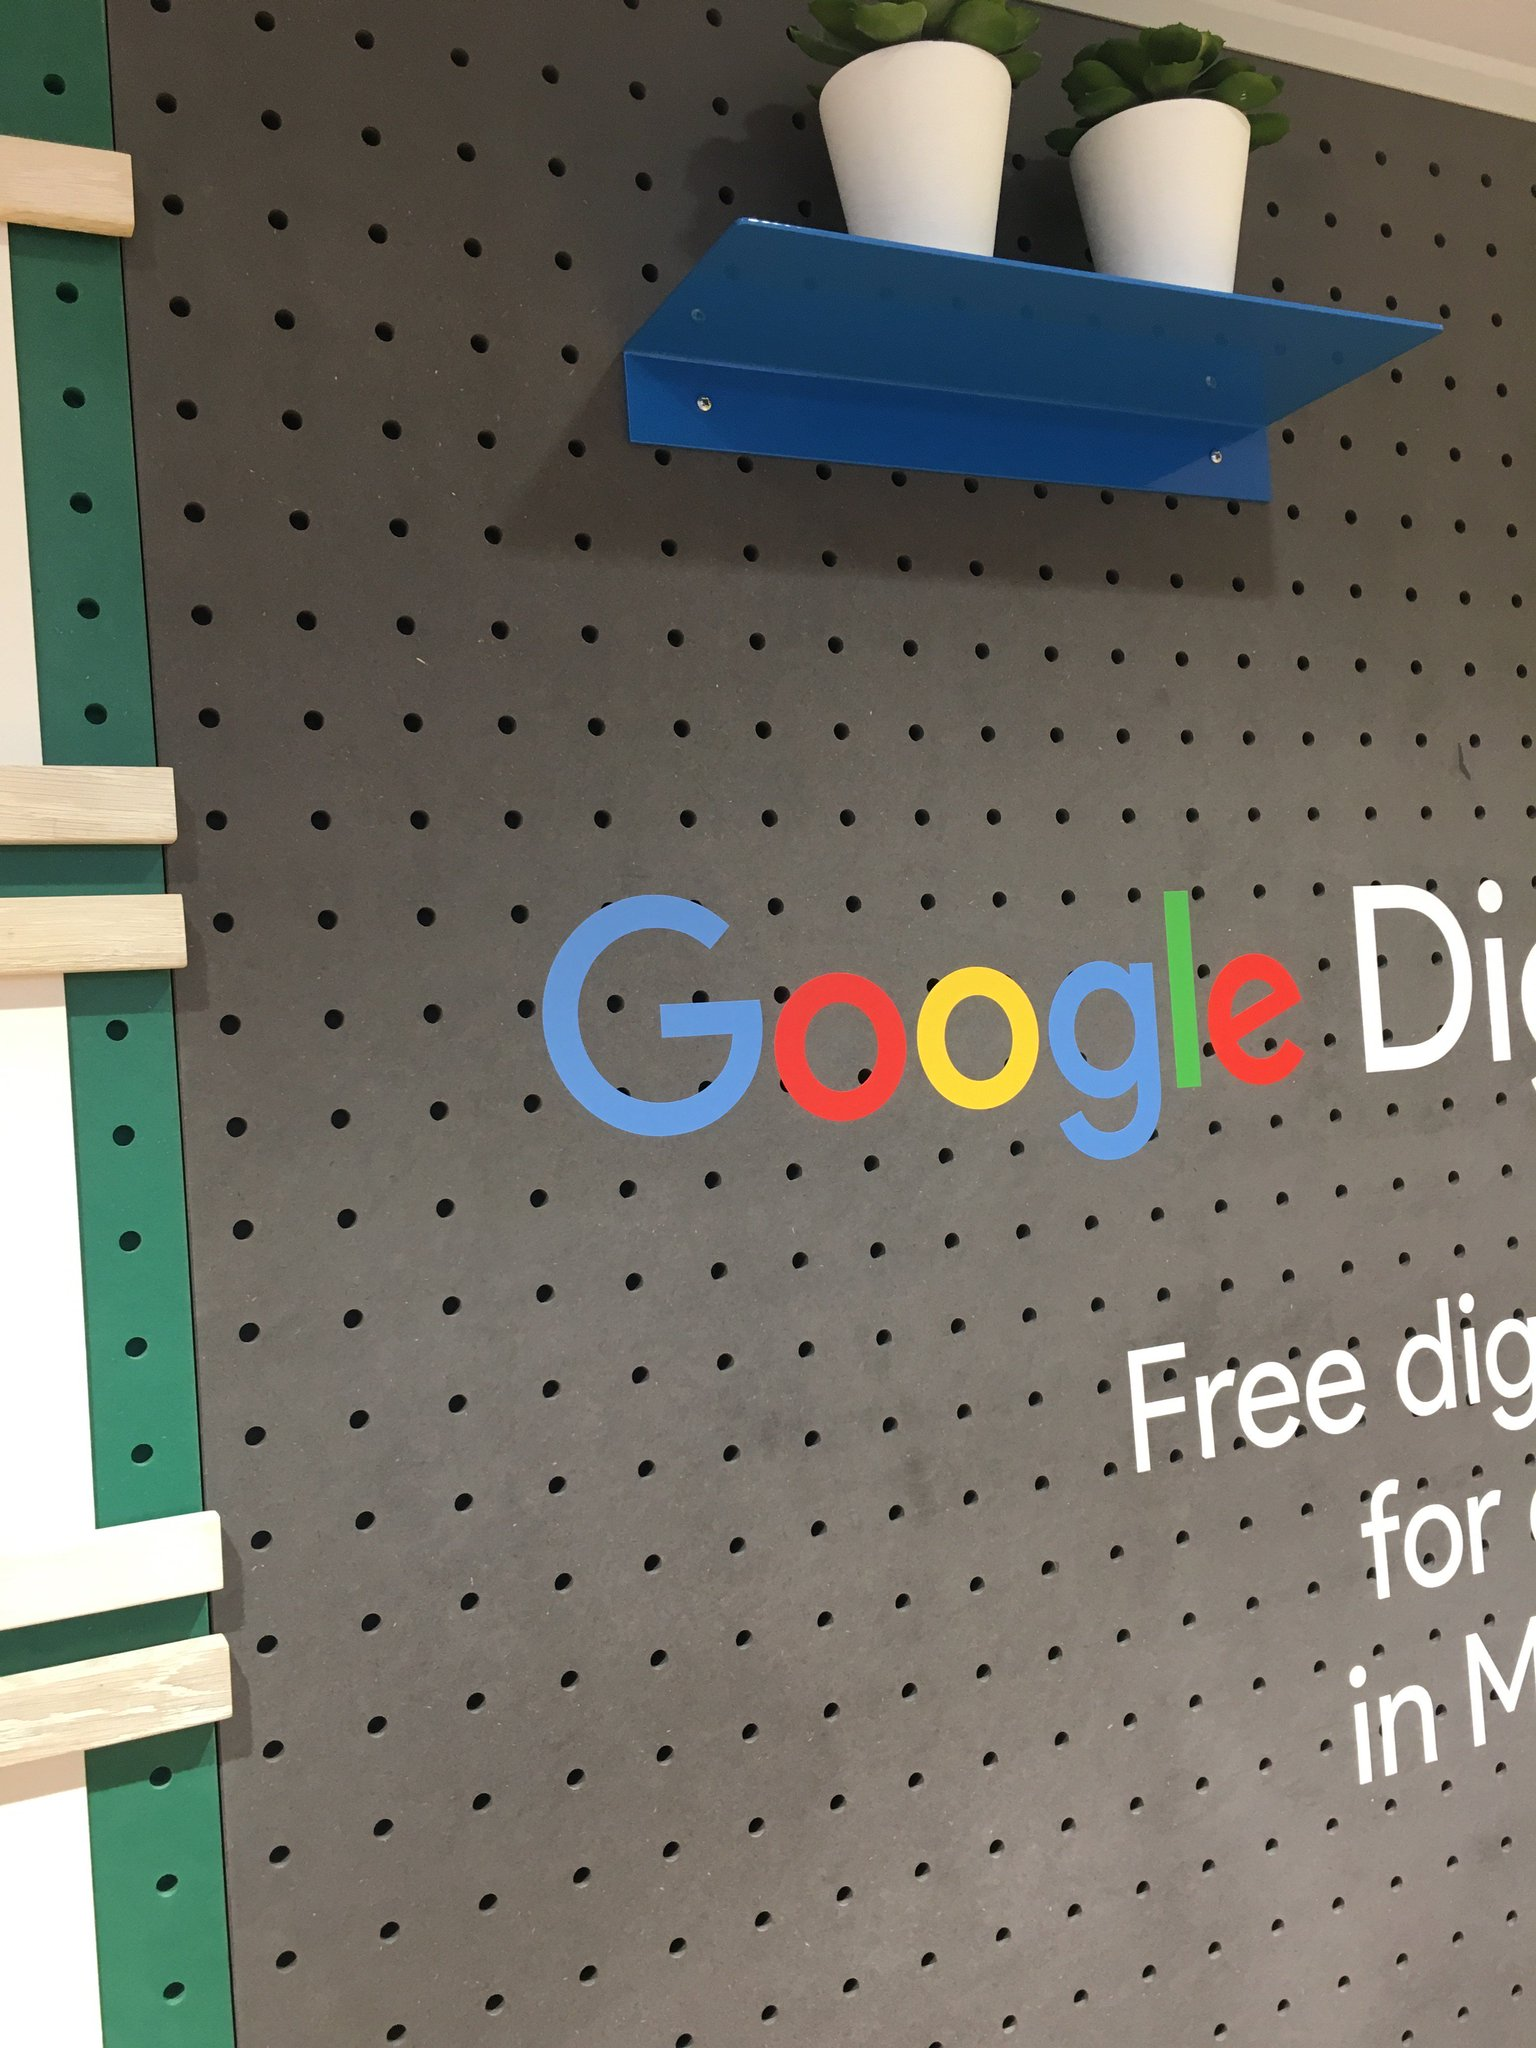 We're here at the Google Digital Garage checking out what @GoogleUK has to offer Manchester! #DigitalGarage https://t.co/J7lWNtjnkr